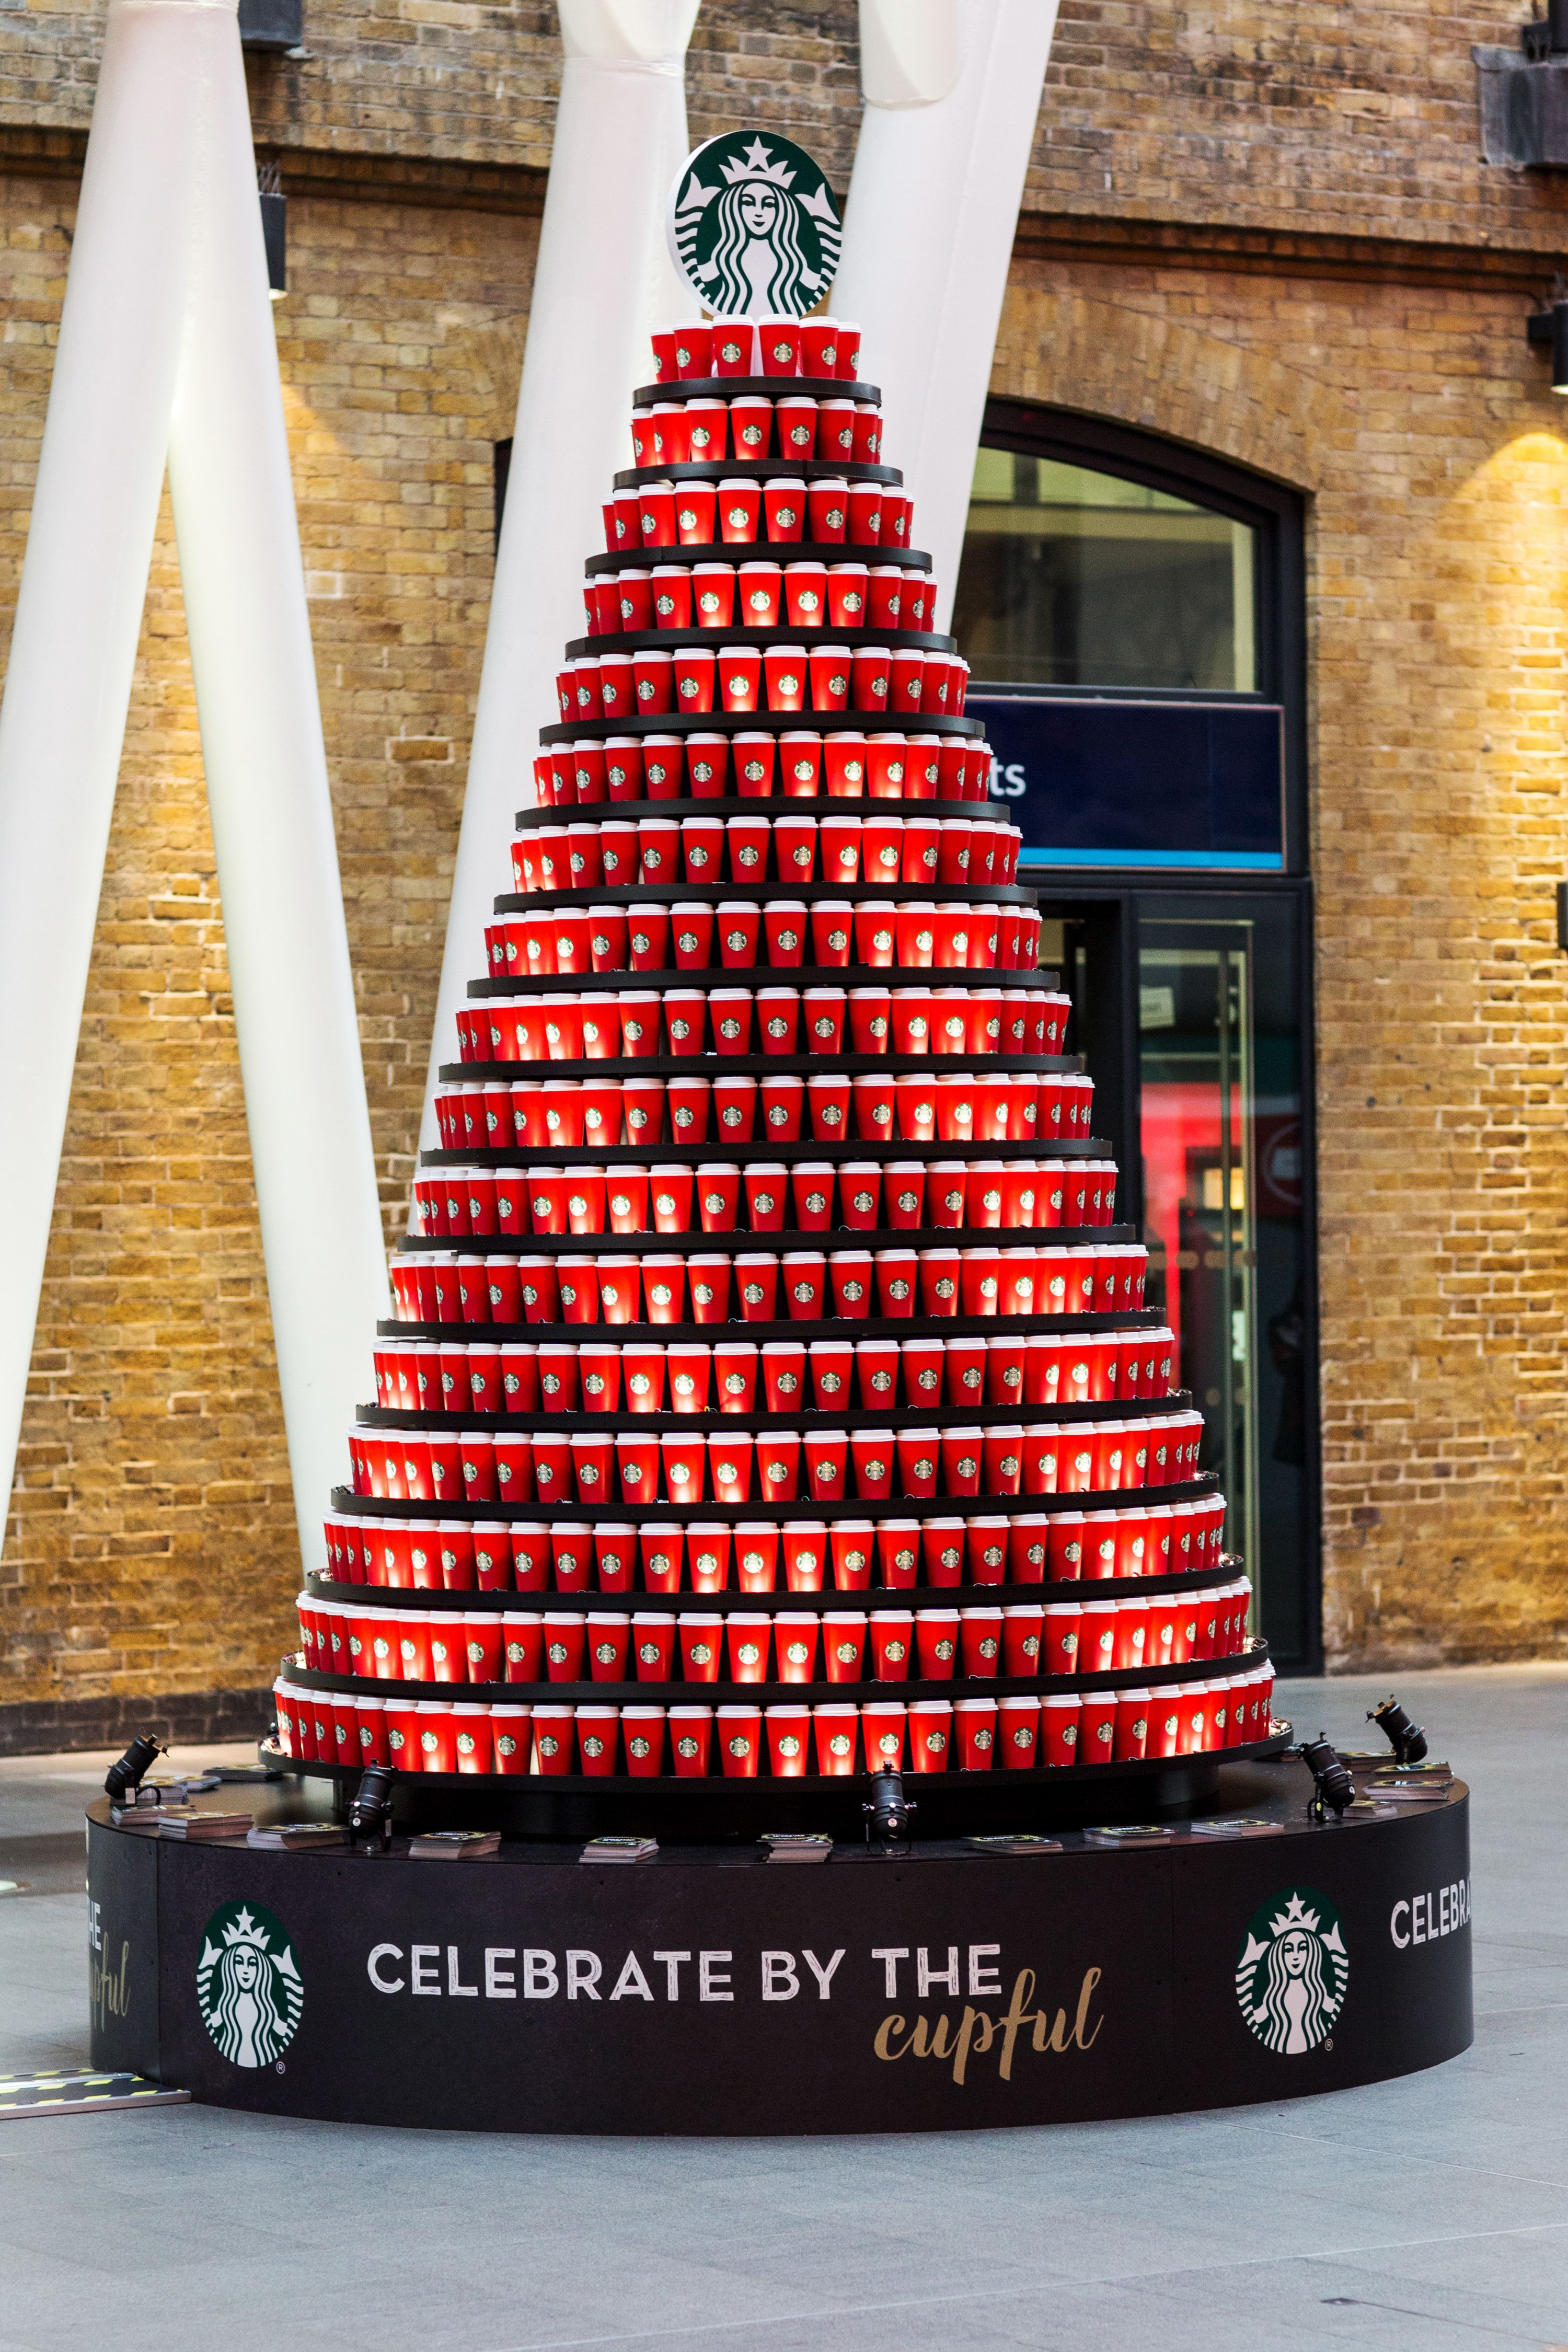 Pin By Jet On Pilhas Display Supermercado In 2020 Starbucks Christmas Red Cups Unusual Christmas Trees